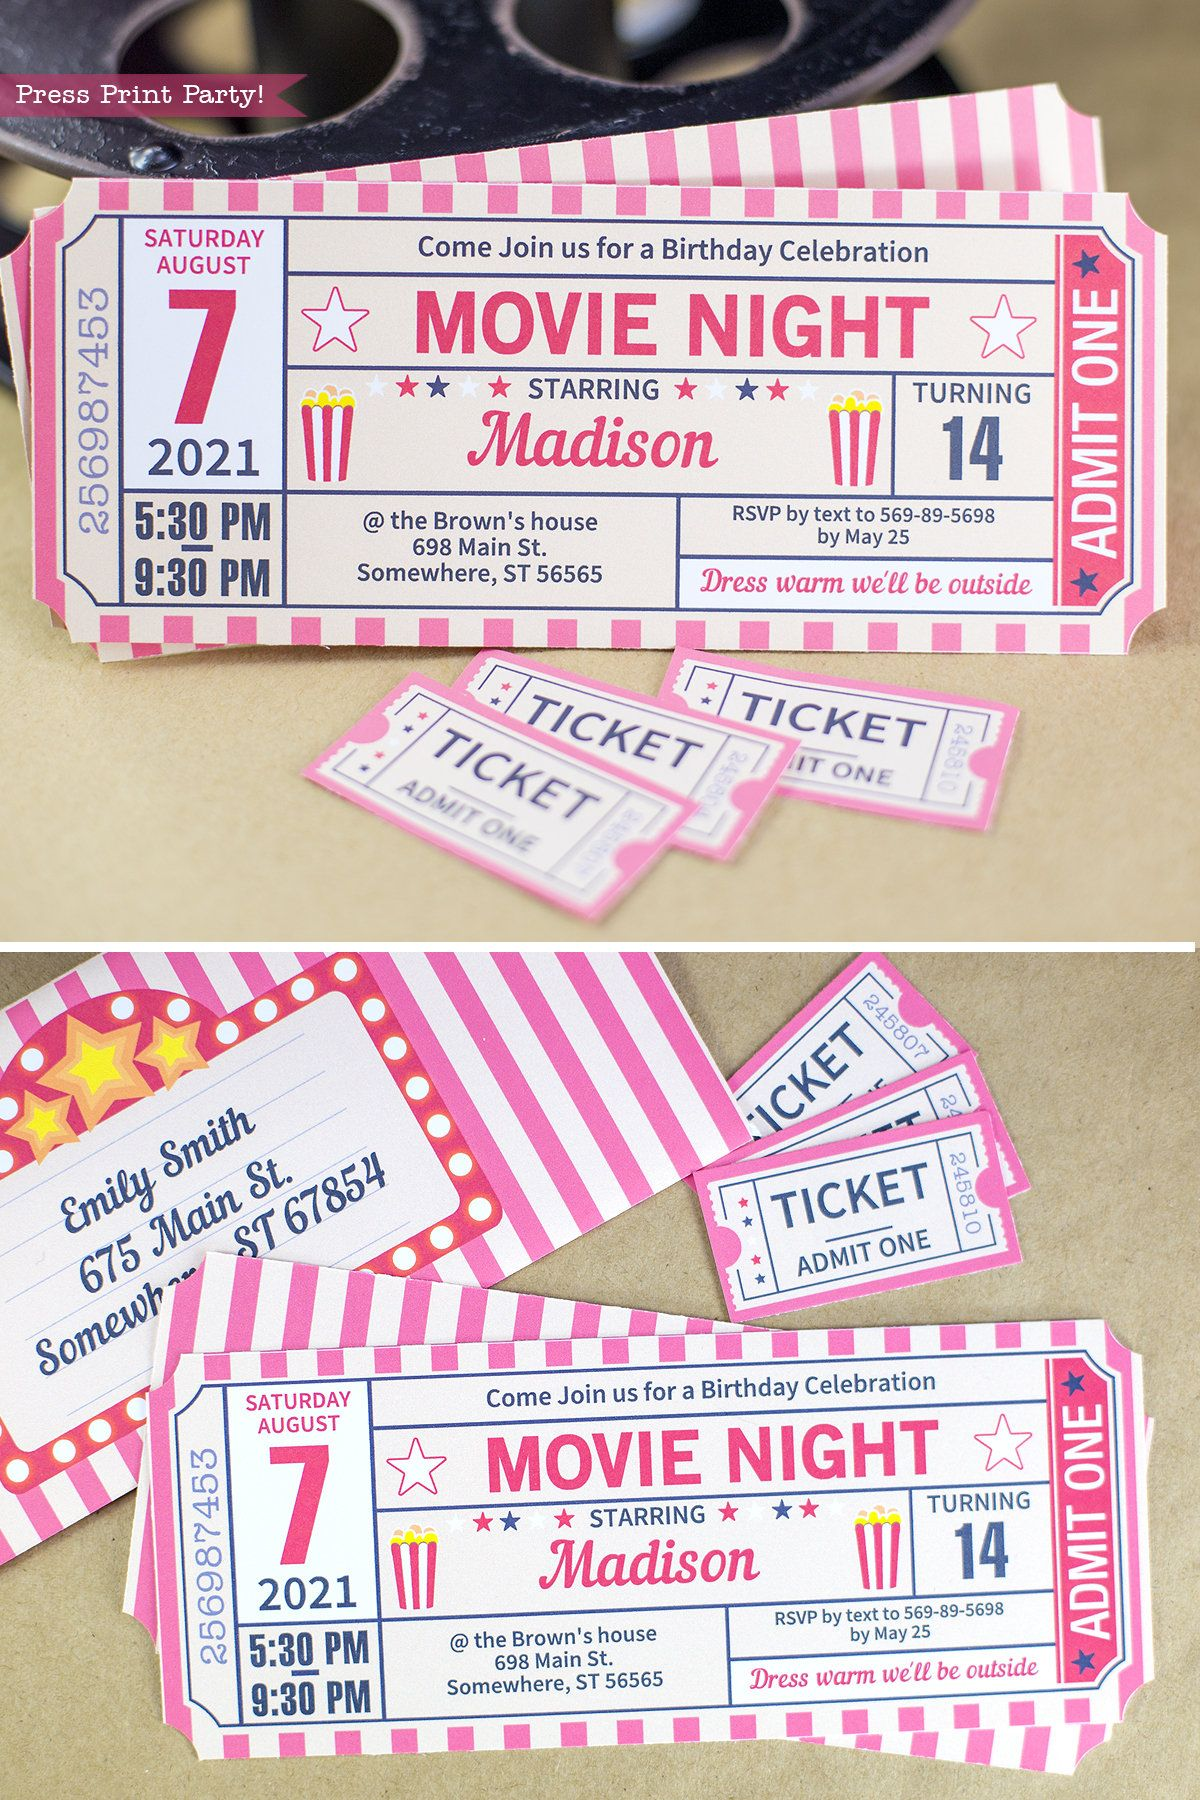 Movie Night Invitation Printables RED Vintage Ticket, Movie Ticket Stub Invite, Movie Ticket Template, Birthday party, INSTANT DOWNLOAD